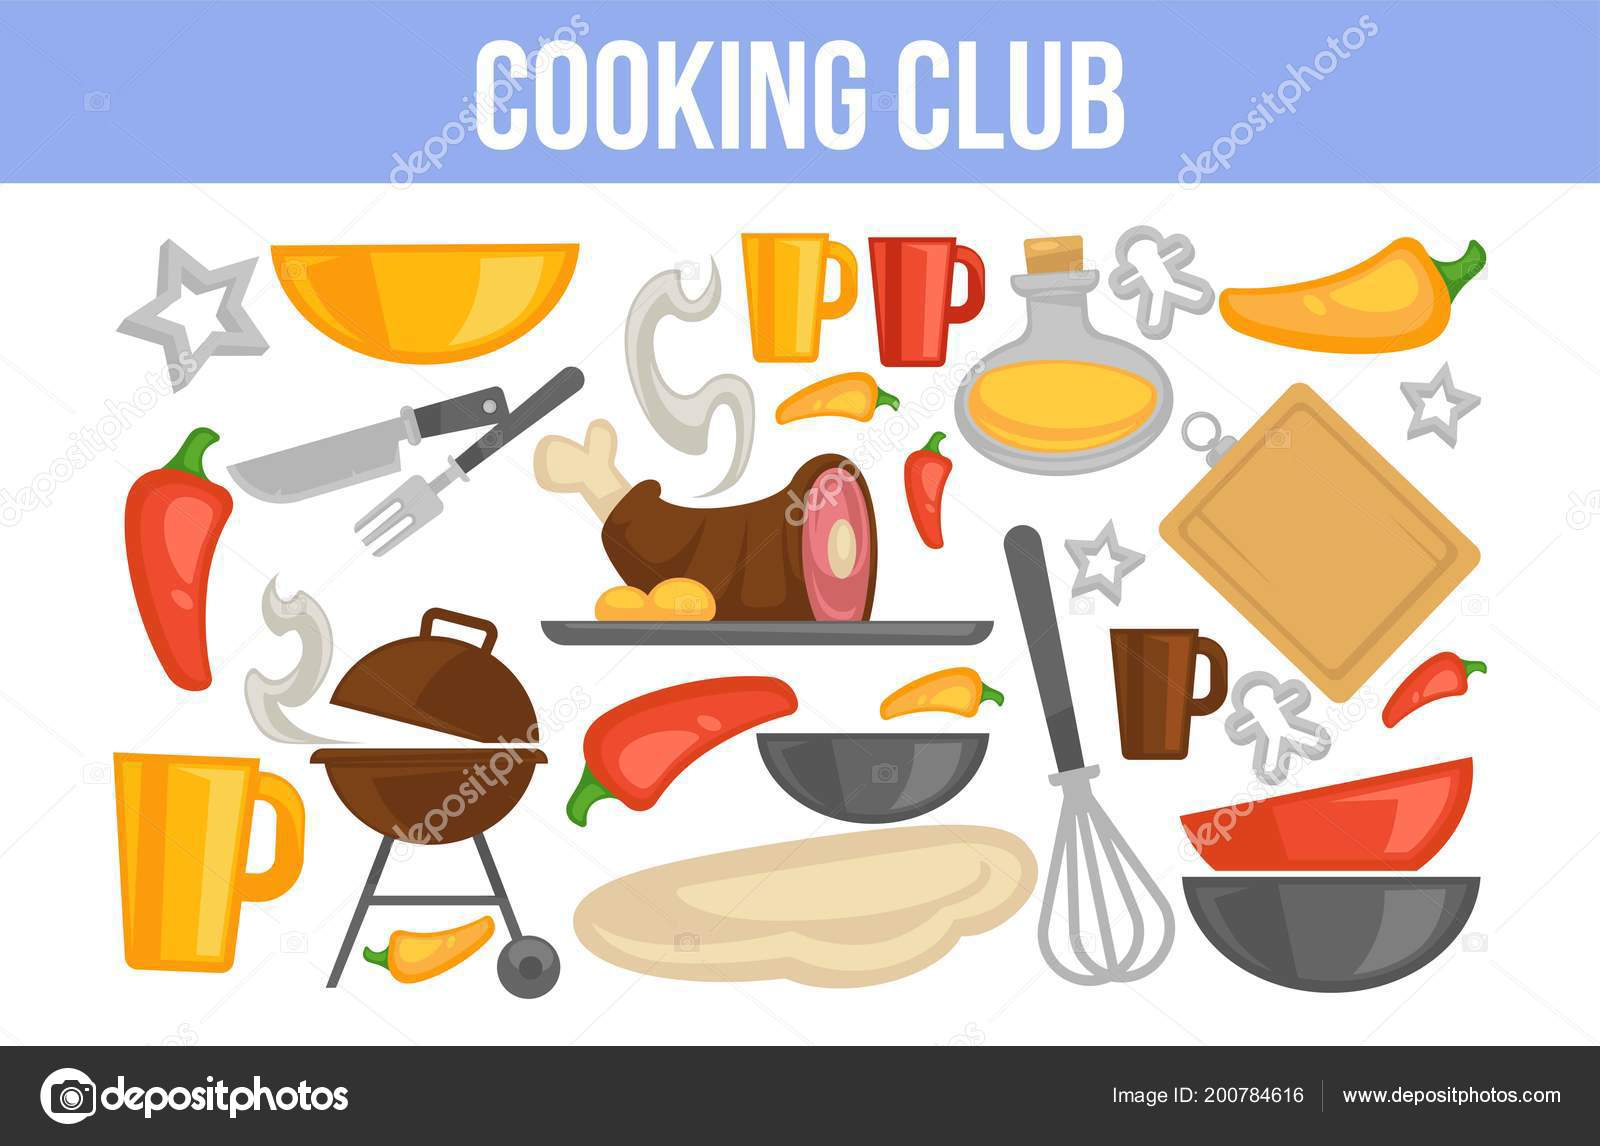 Cooking Club Poster Kitchenware Ingredients Dishes Stock Vector